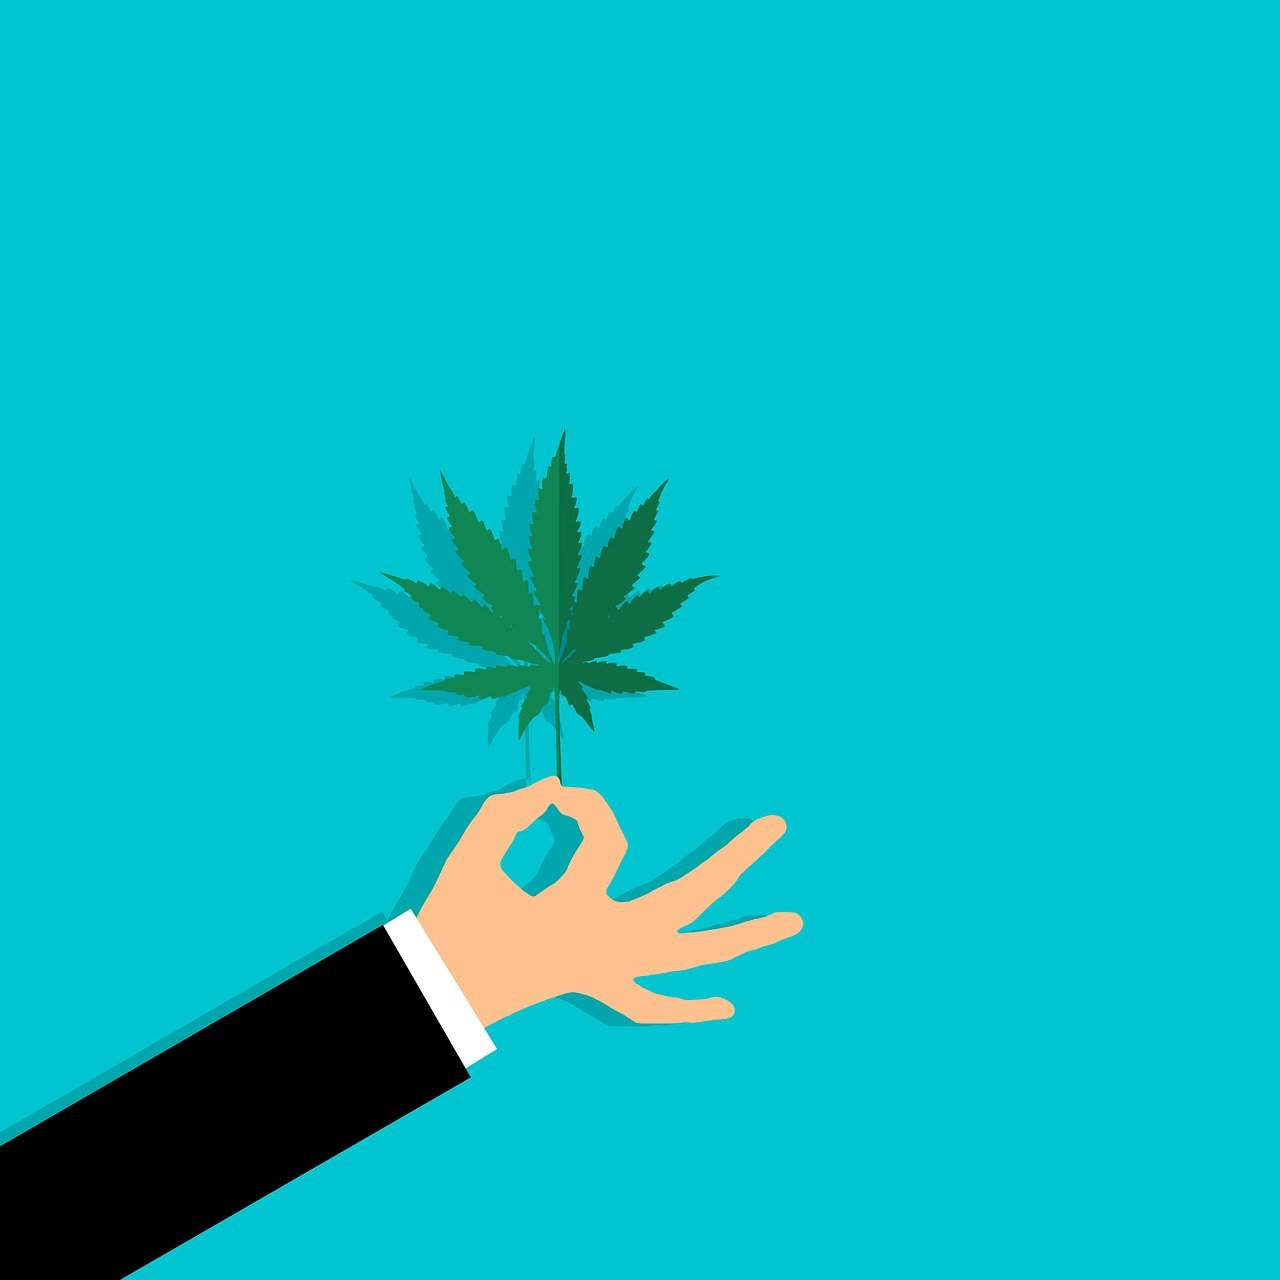 graphic of a hand holding a cannabis leaf